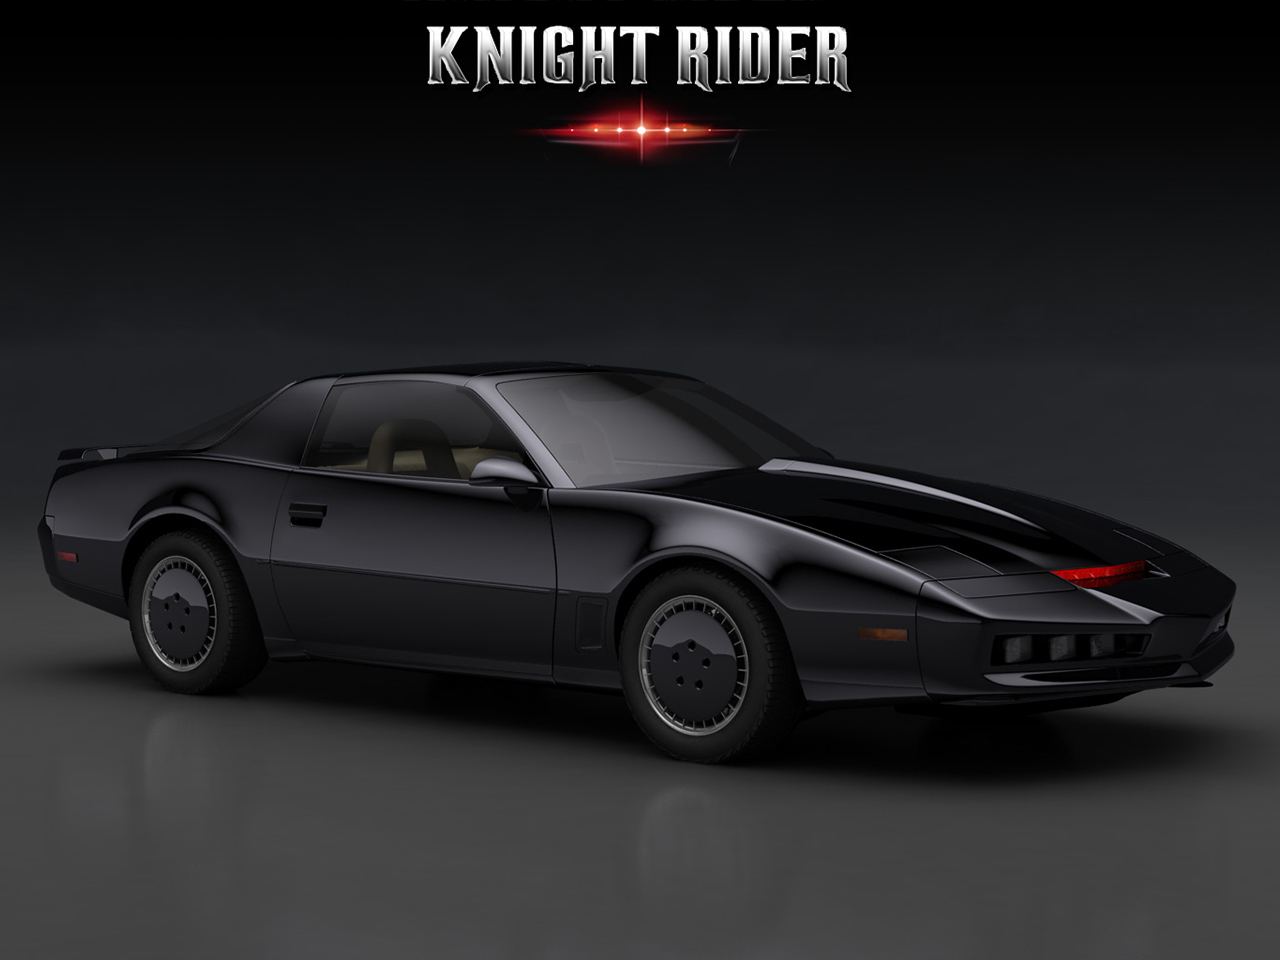 medieval-knights-arca-do-tesouro-k-i-t-knight-rider-hot-wheels-186995.jpg